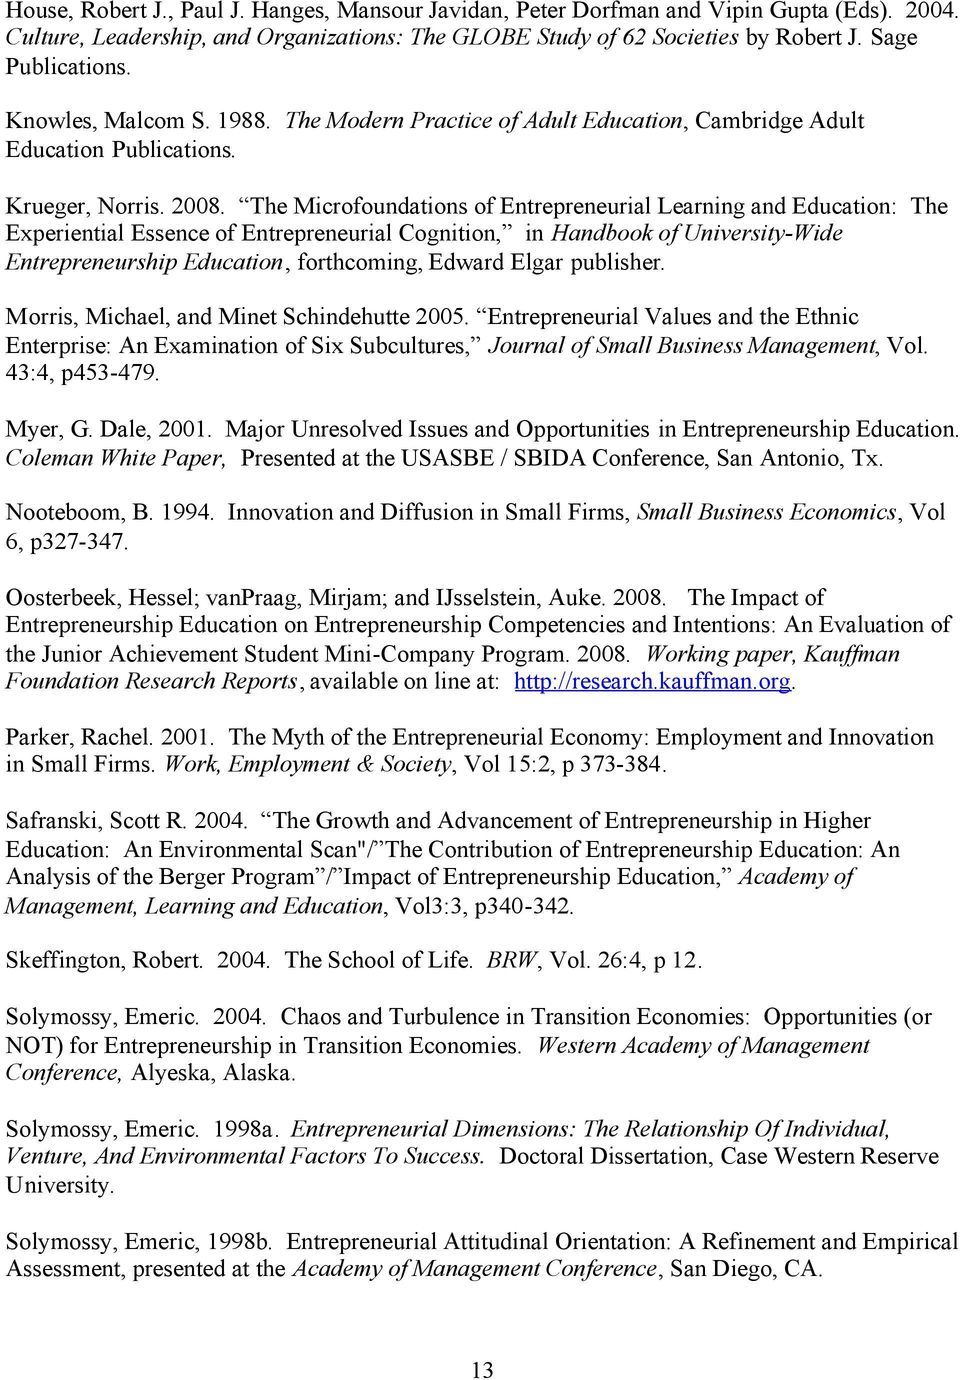 The Microfoundations of Entrepreneurial Learning and Education: The Experiential Essence of Entrepreneurial Cognition, in Handbook of University-Wide Entrepreneurship Education, forthcoming, Edward